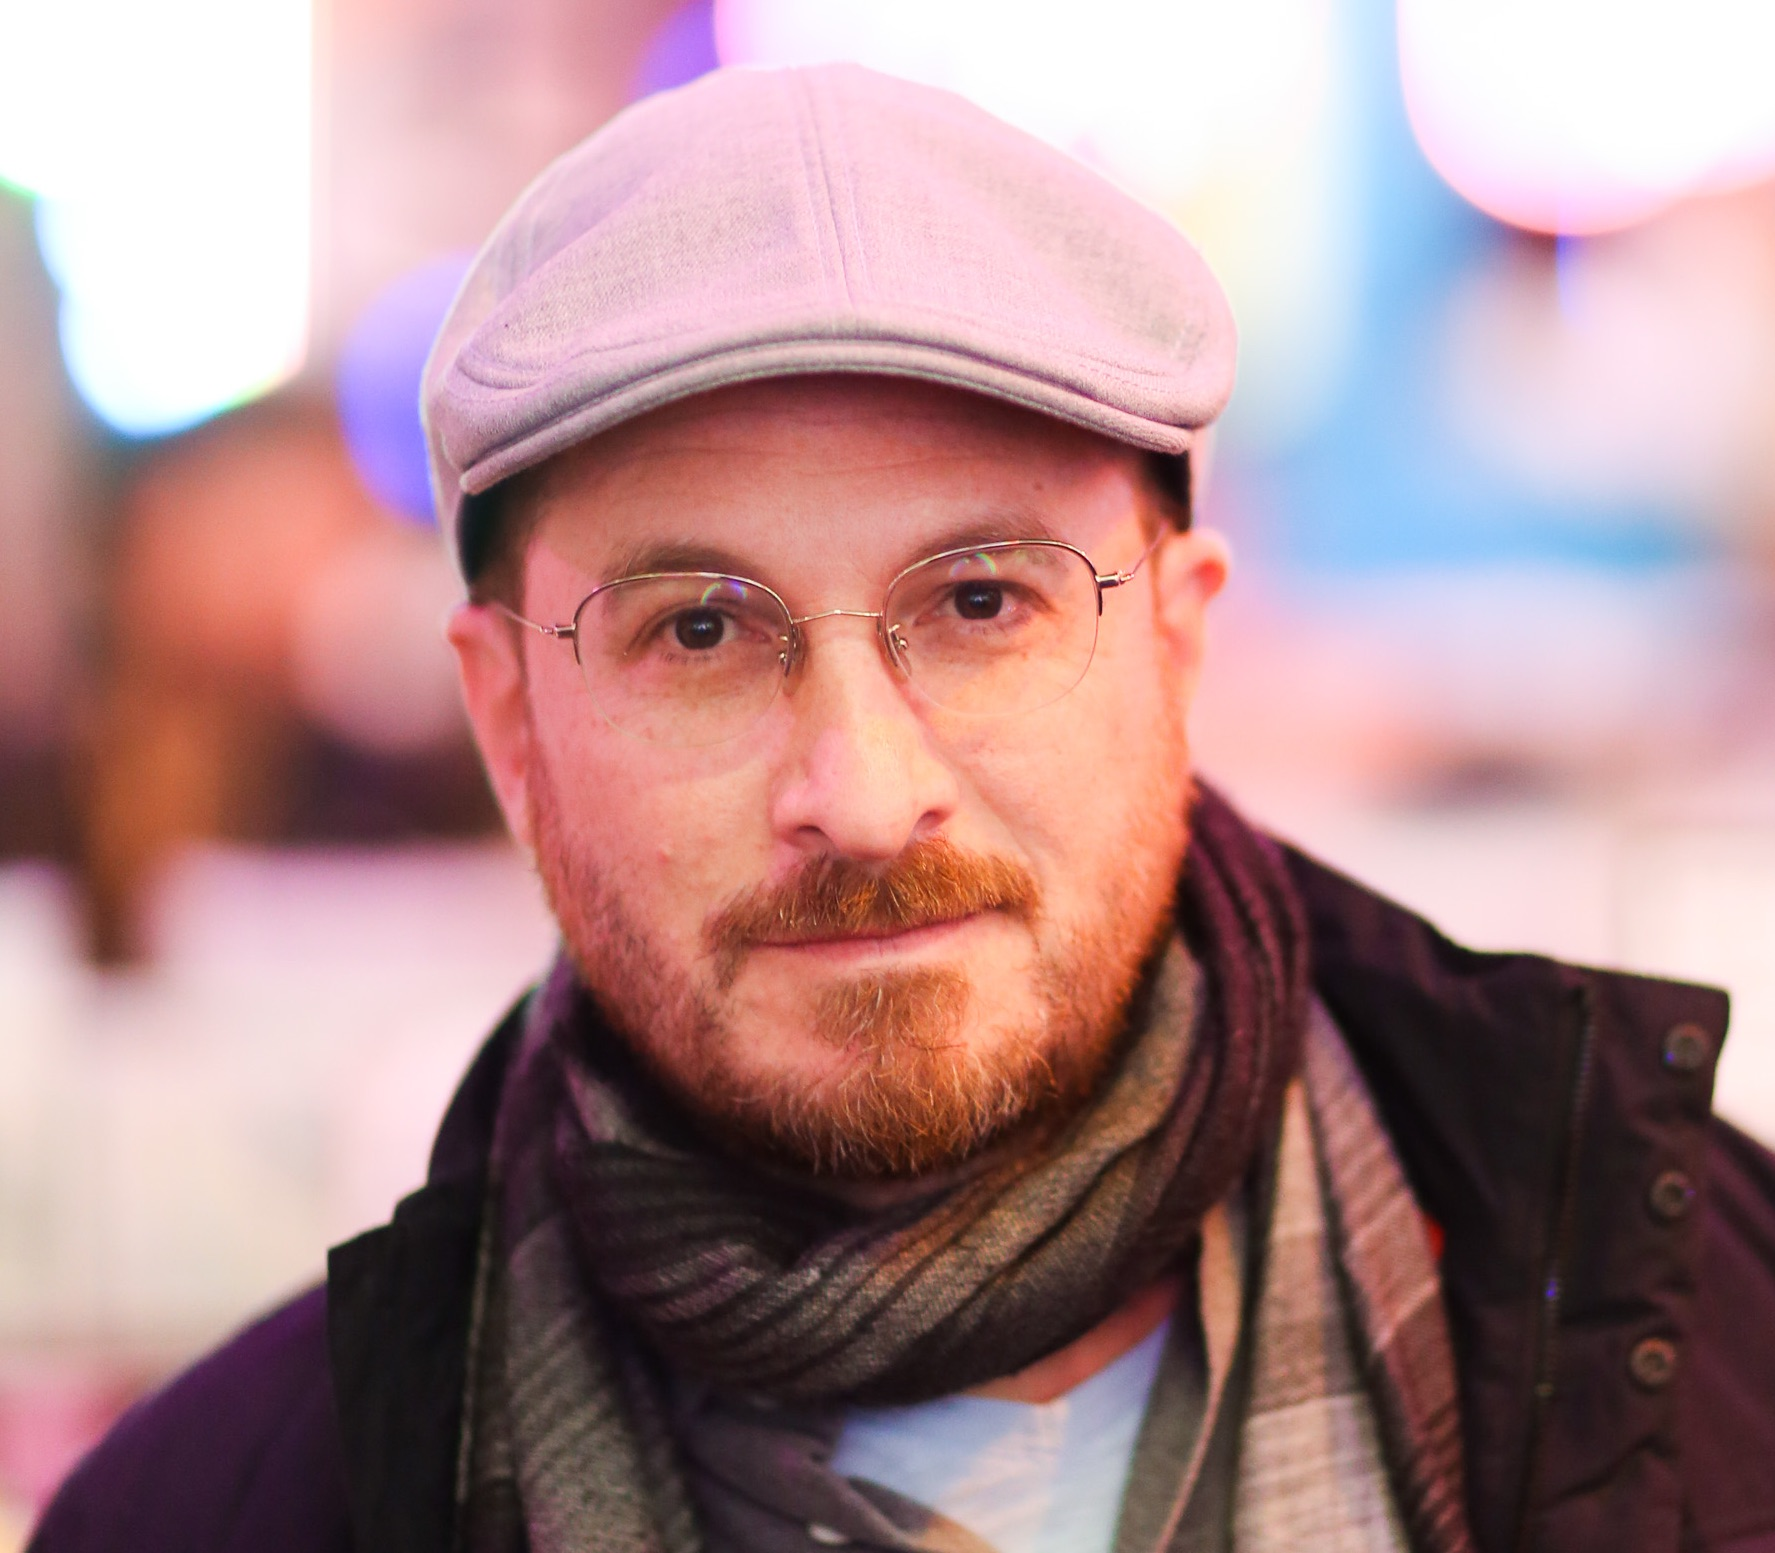 mother!': Darren Aronofsky Drama Gets October Release Date | IndieWire